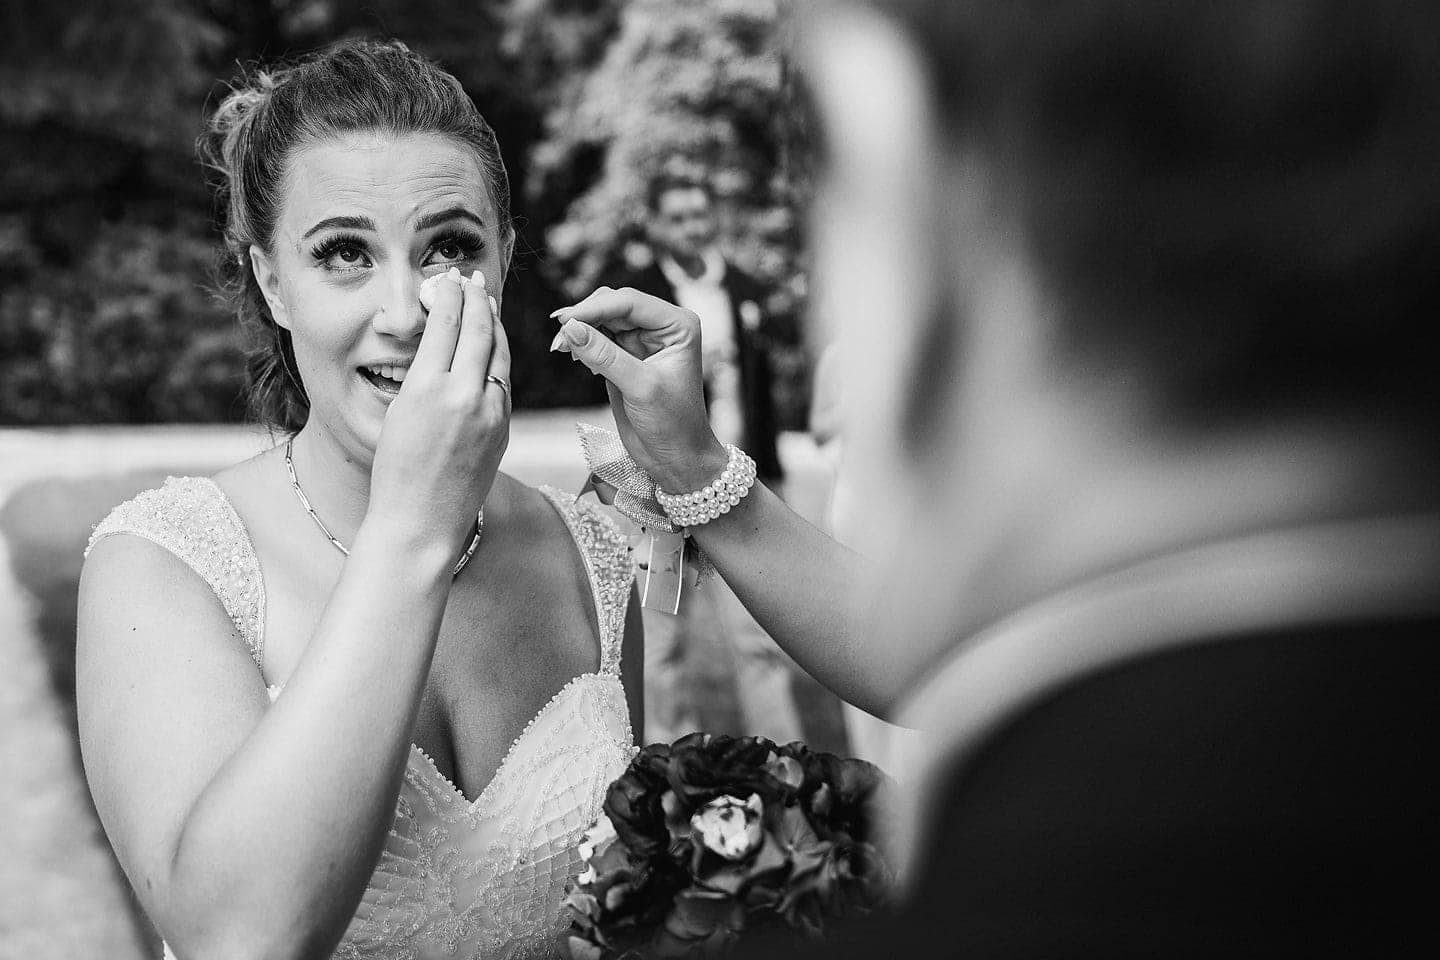 Best Of 2018 Wedding Photography by Aleks & Irena Kus 126